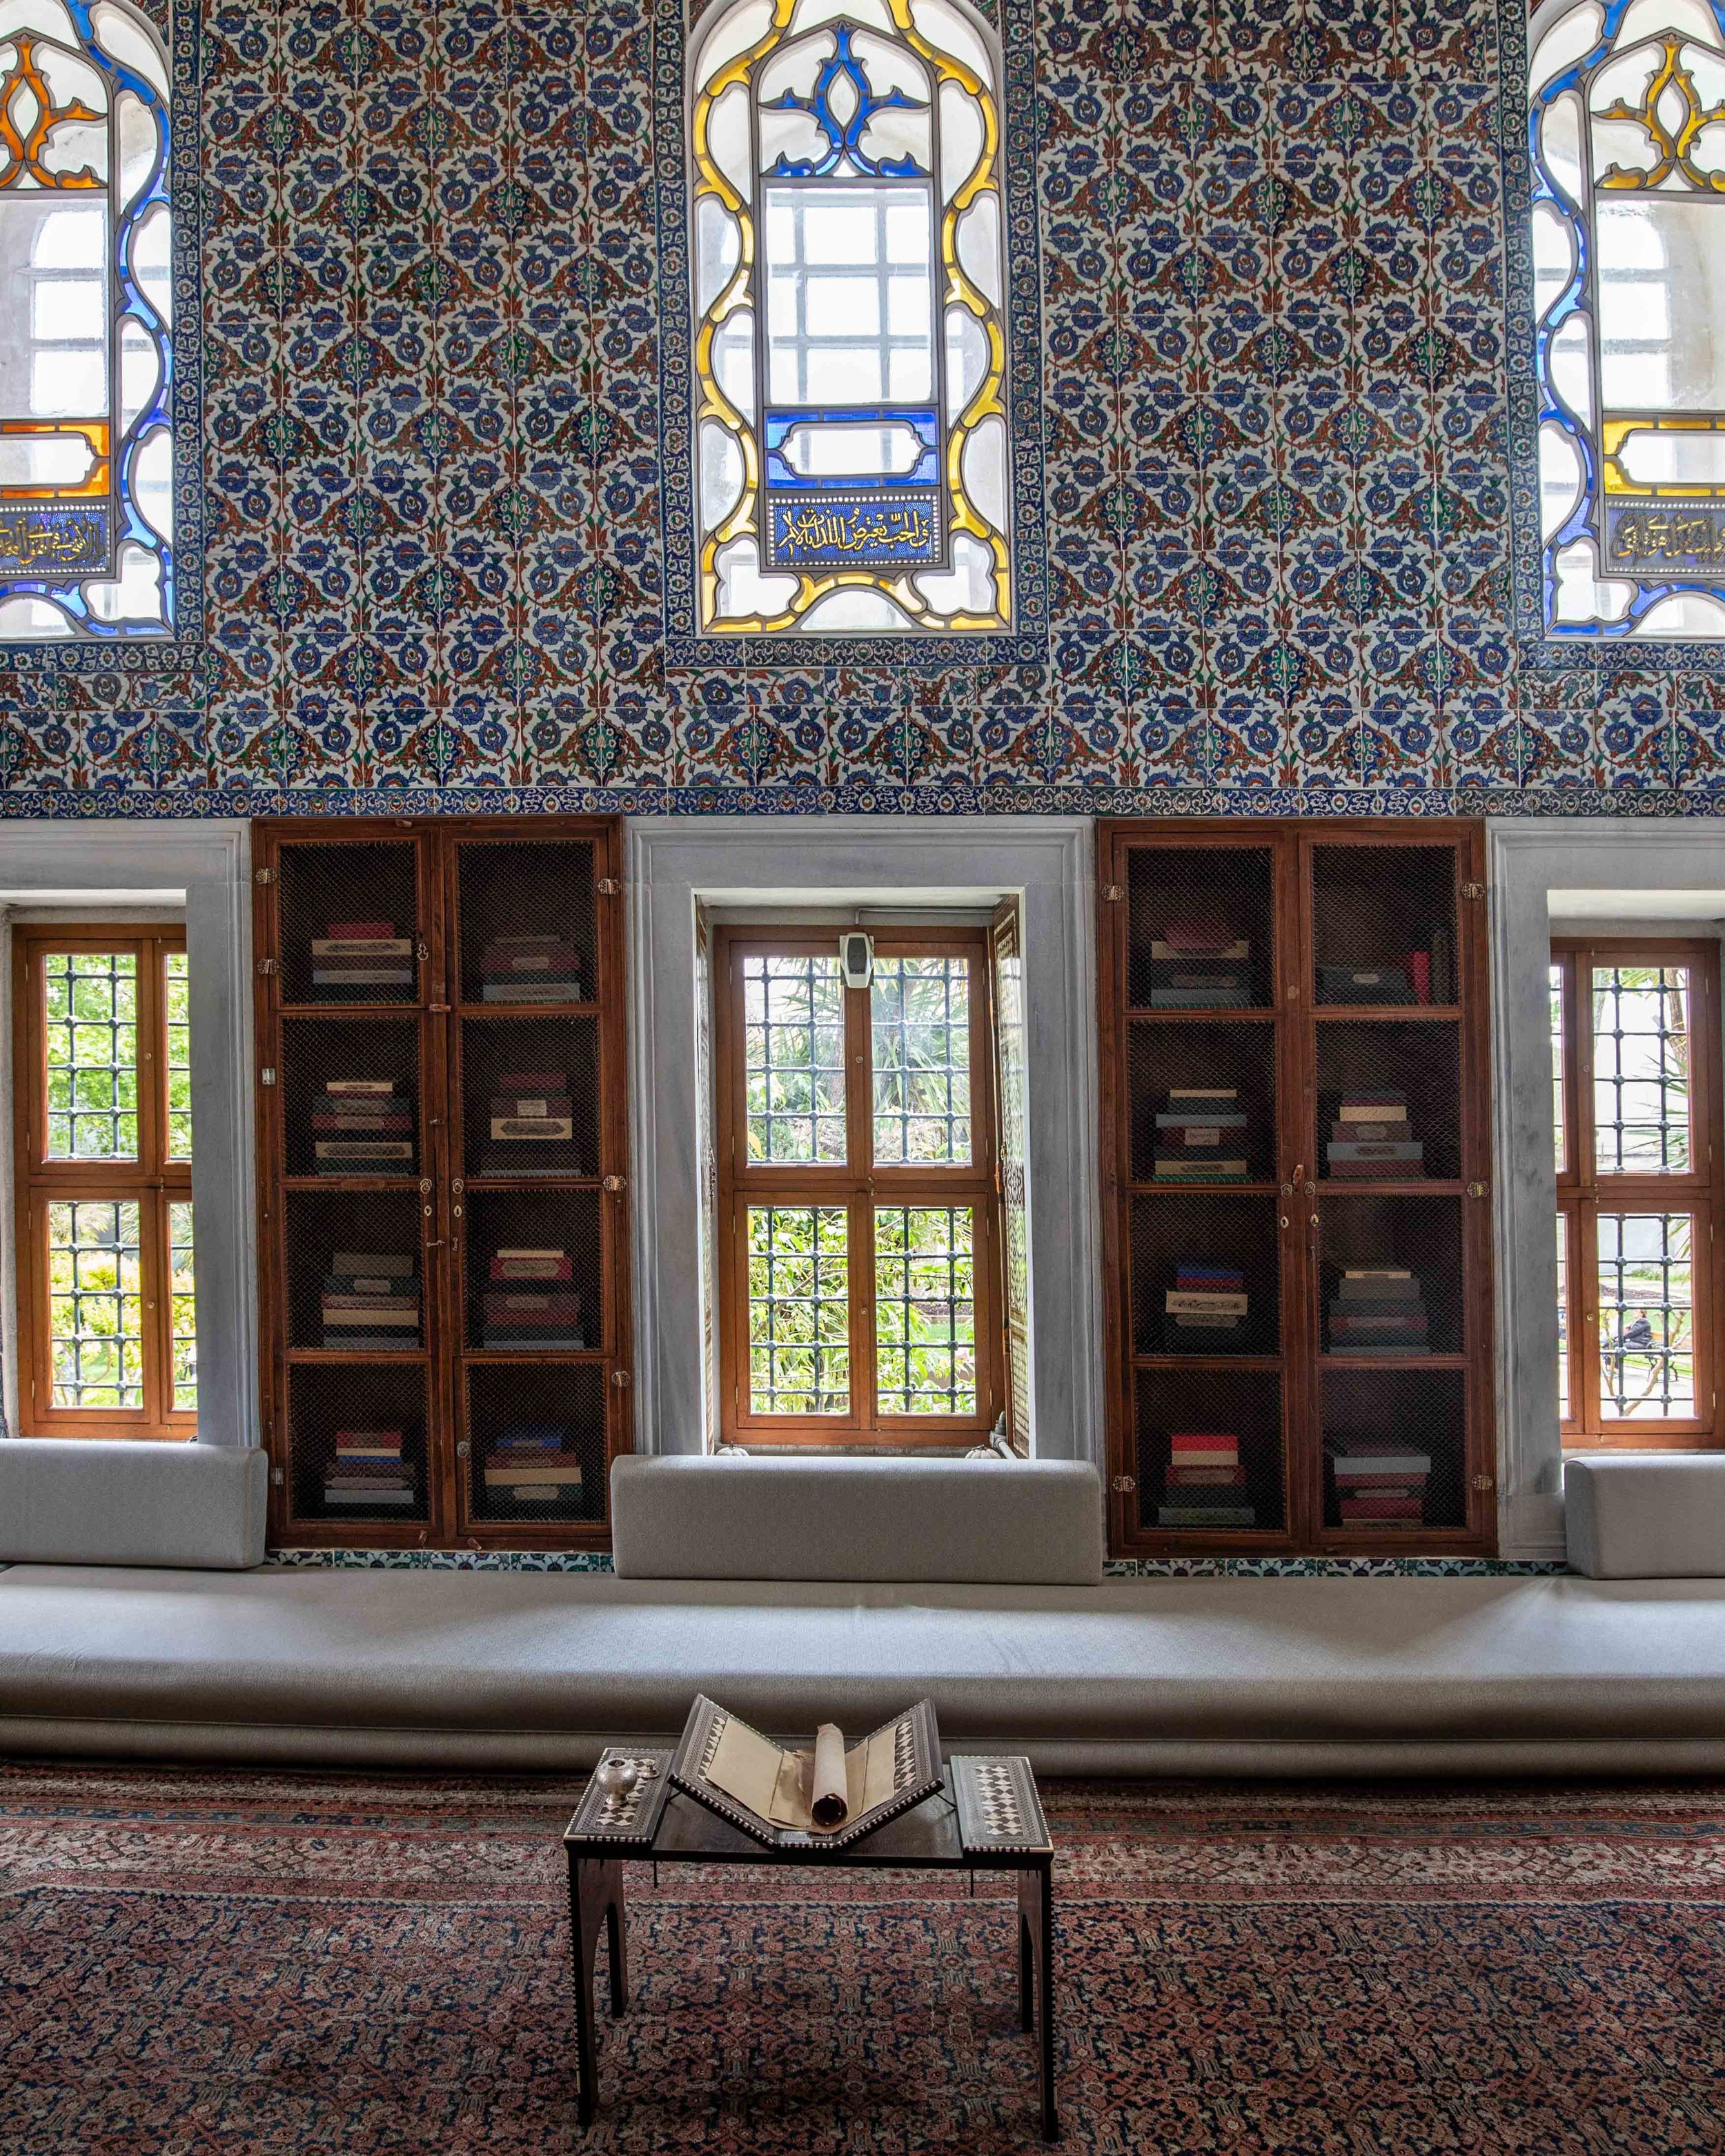 The Library at Topkapi Palace